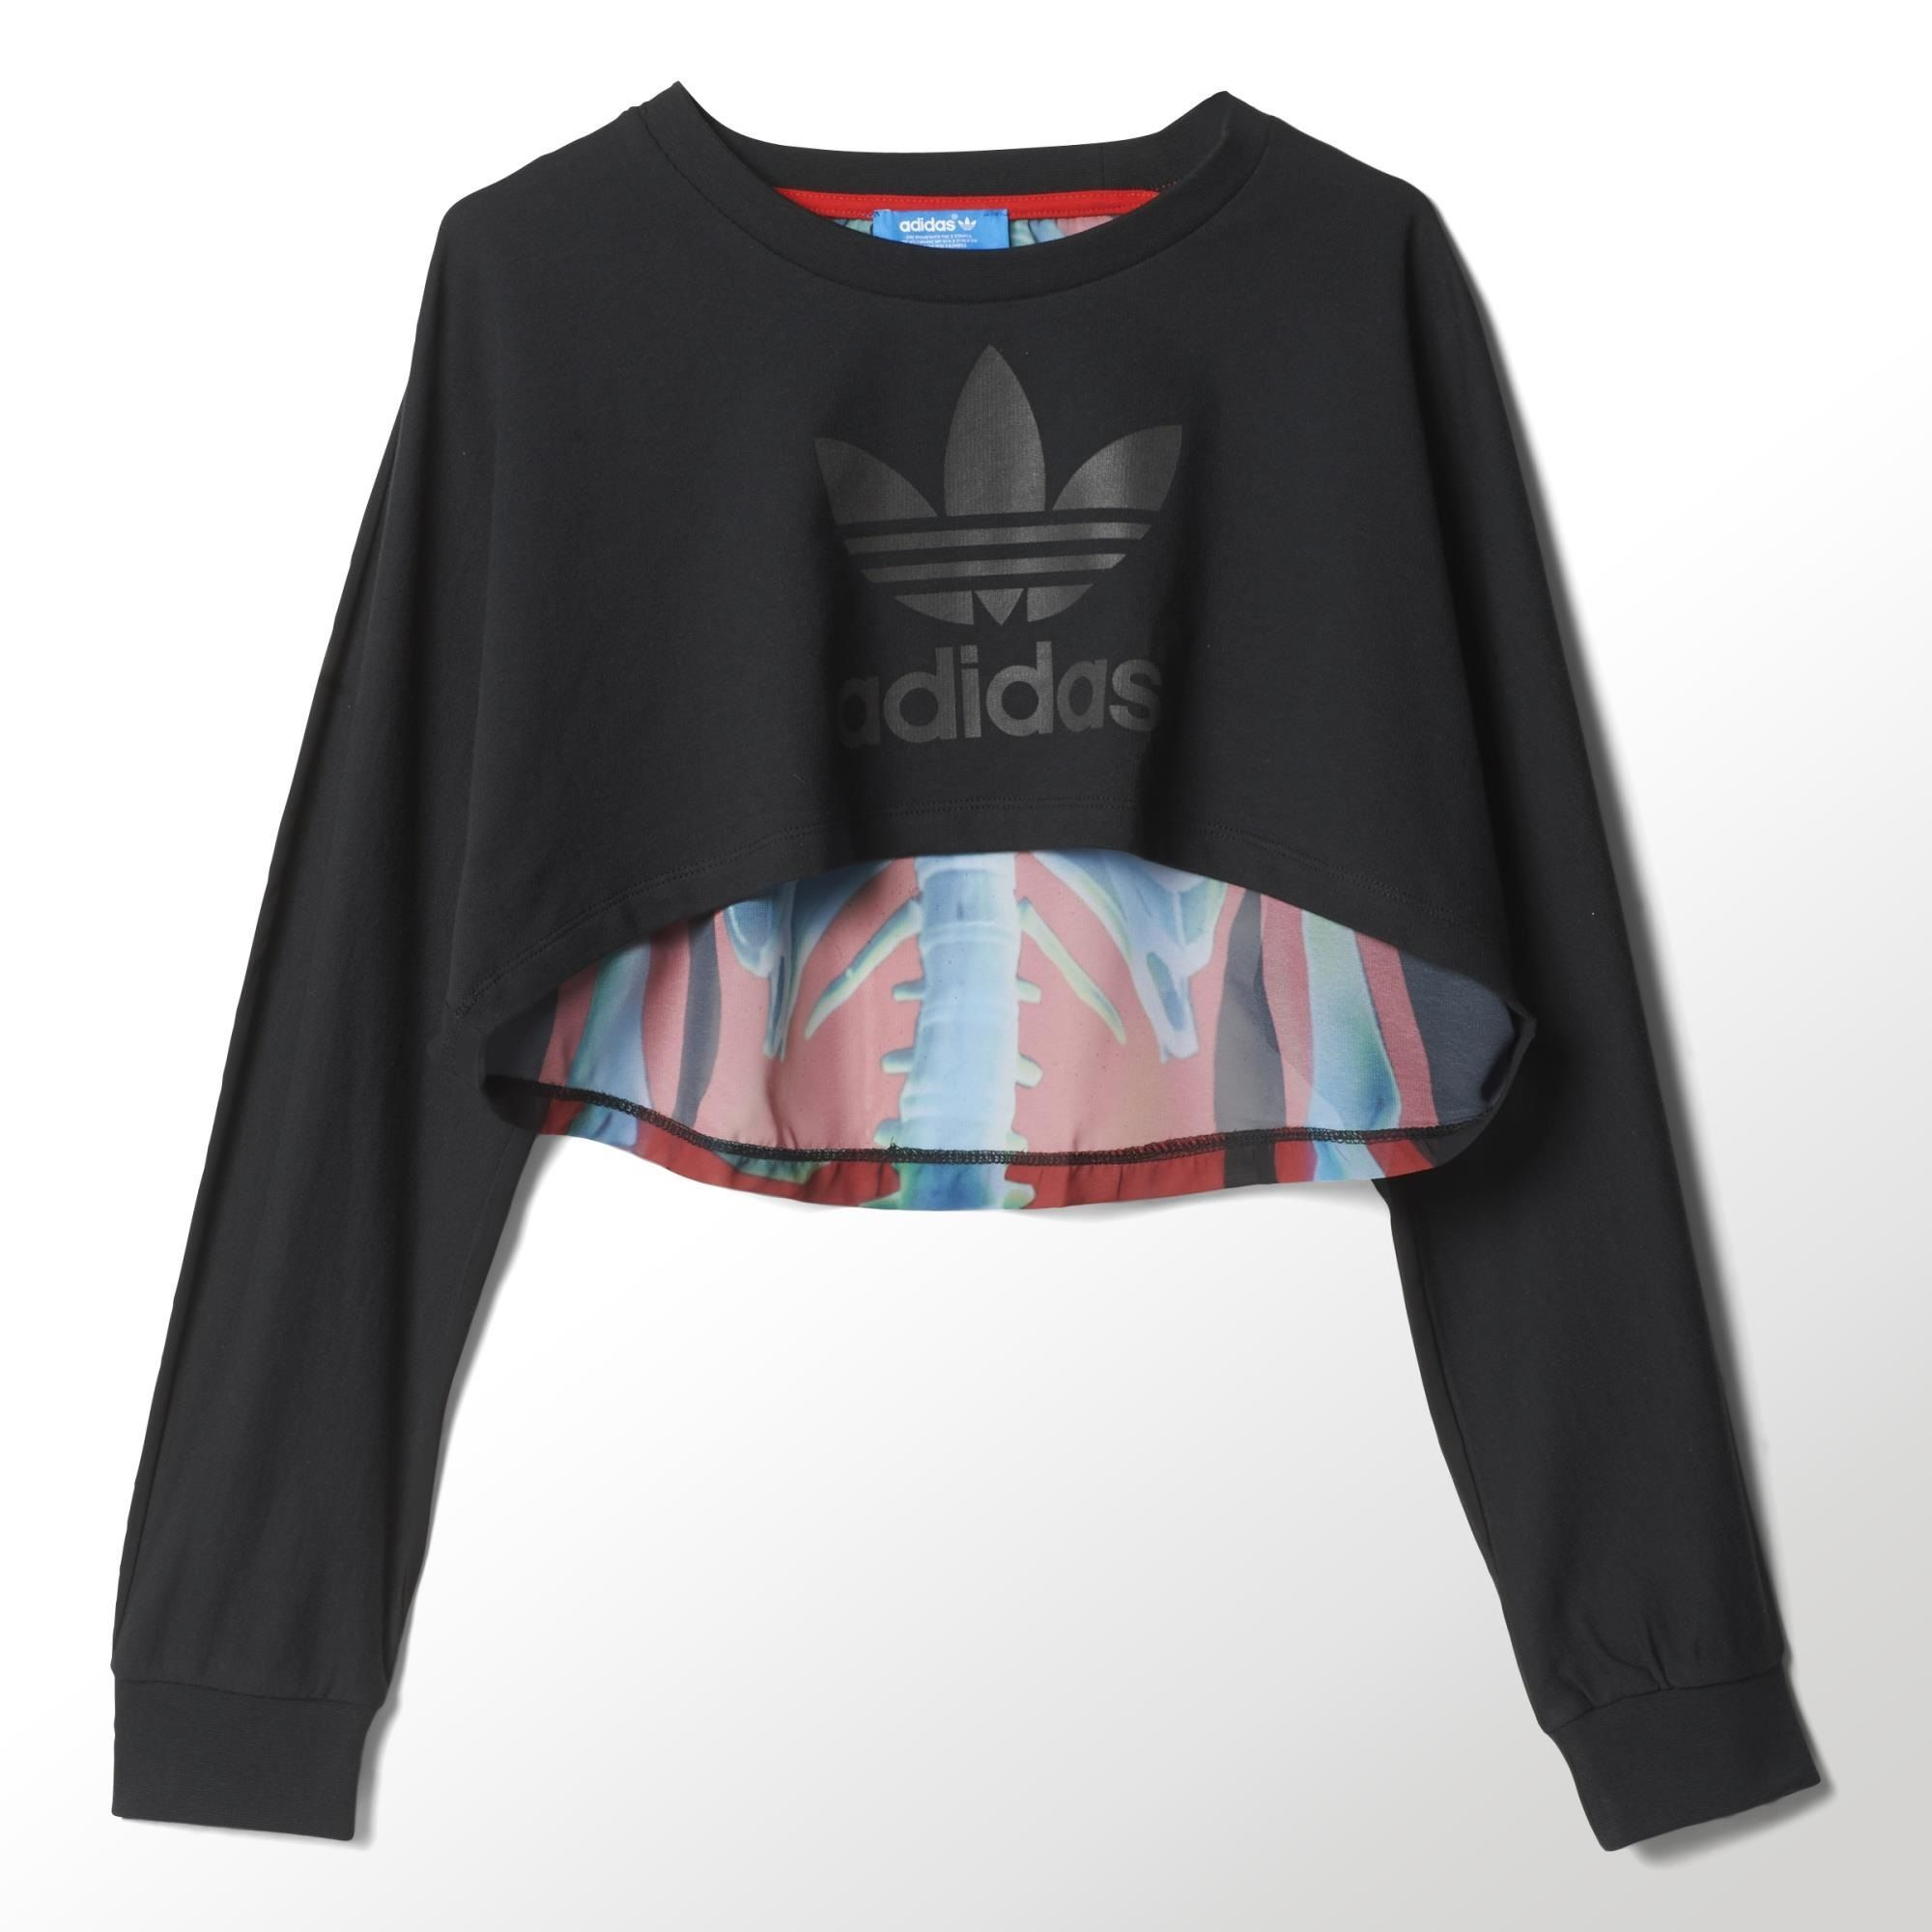 O Ropa Cl Pinterest Ray Adidas Sweater zxwqBCFv